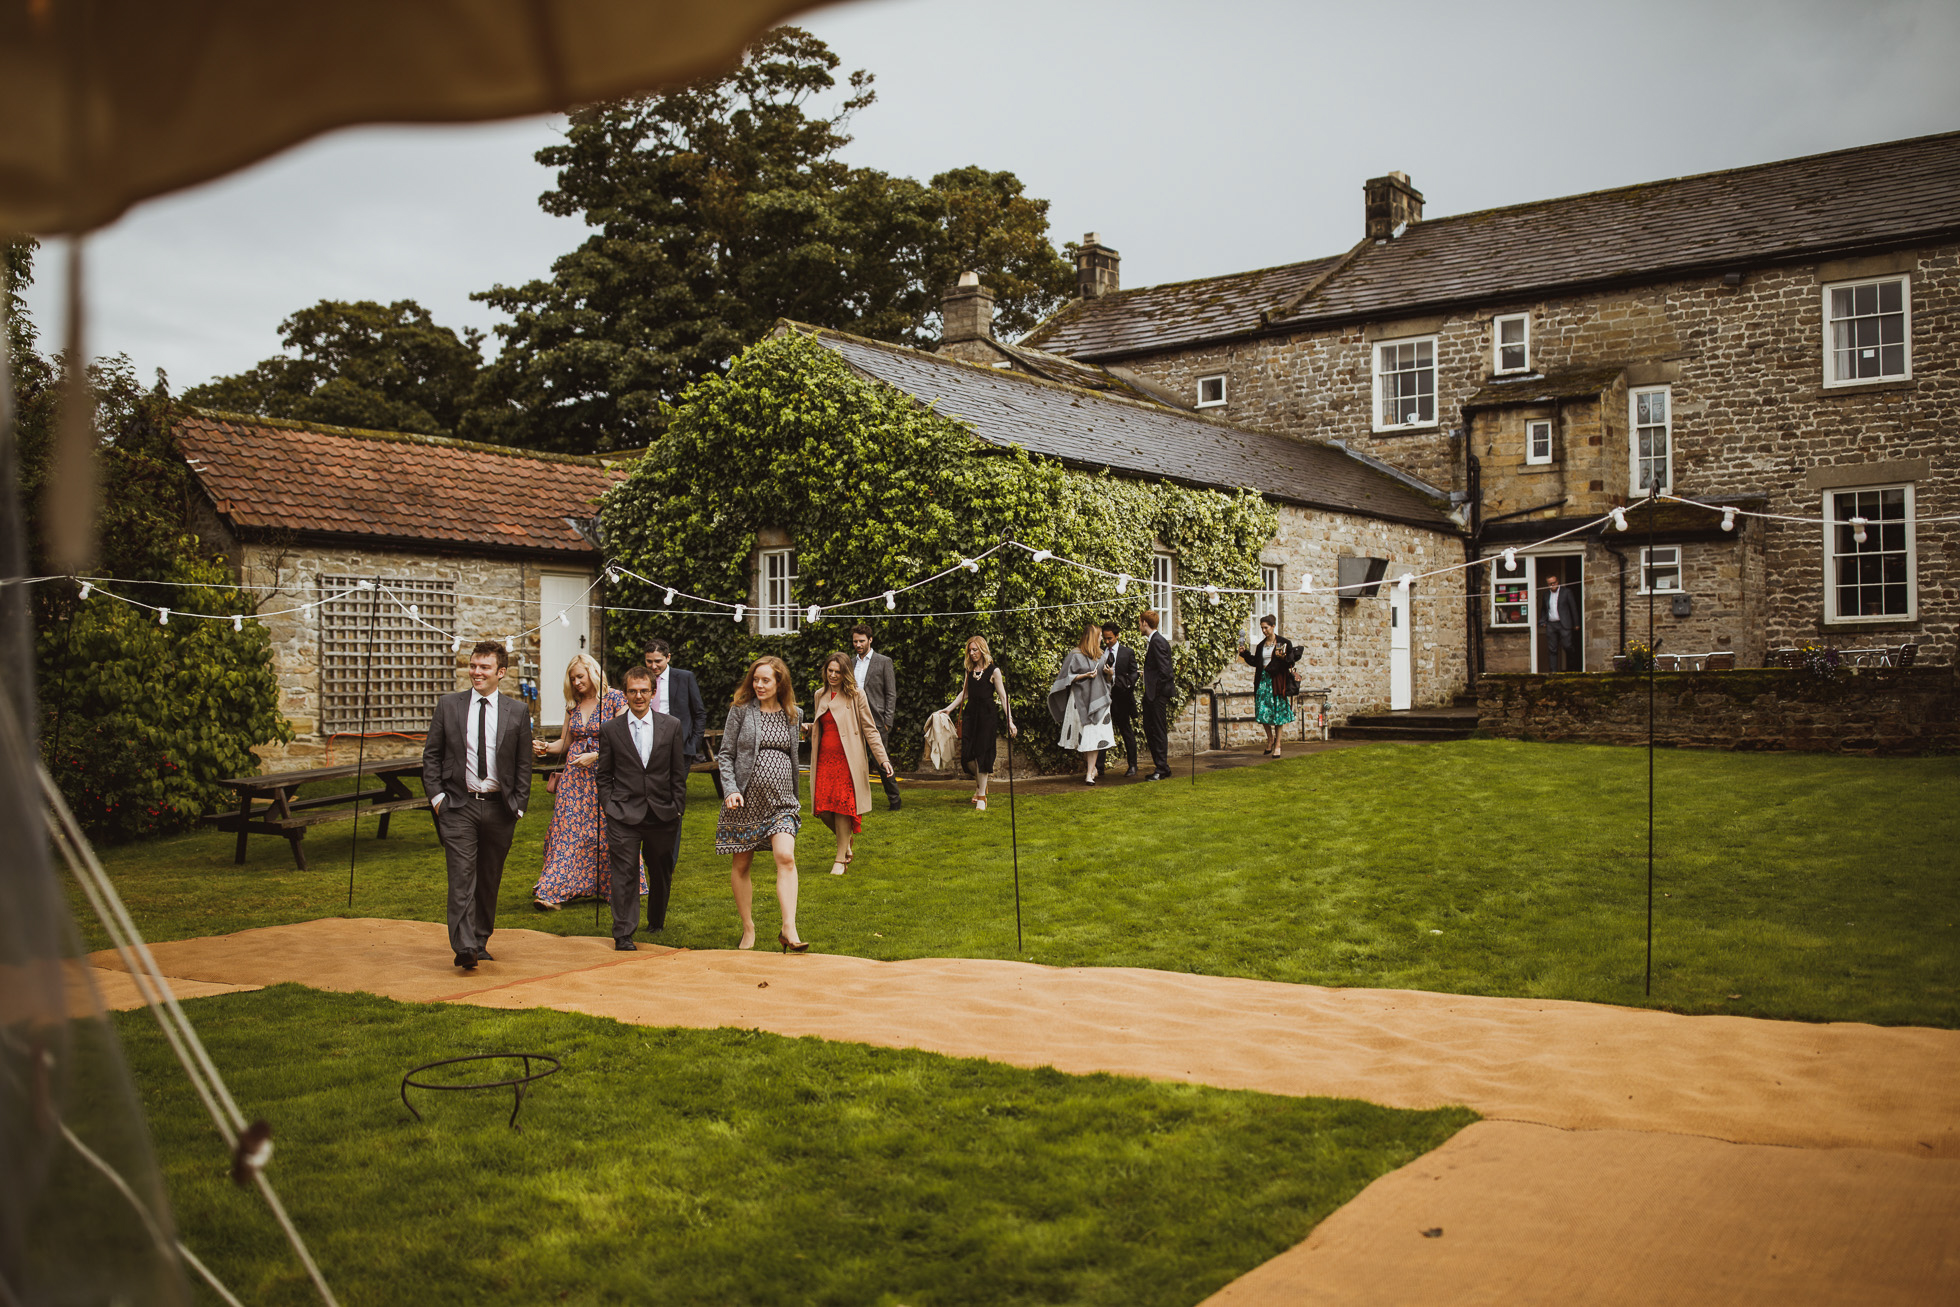 blue_lion_yorkshire_wedding_photographer-92.jpg